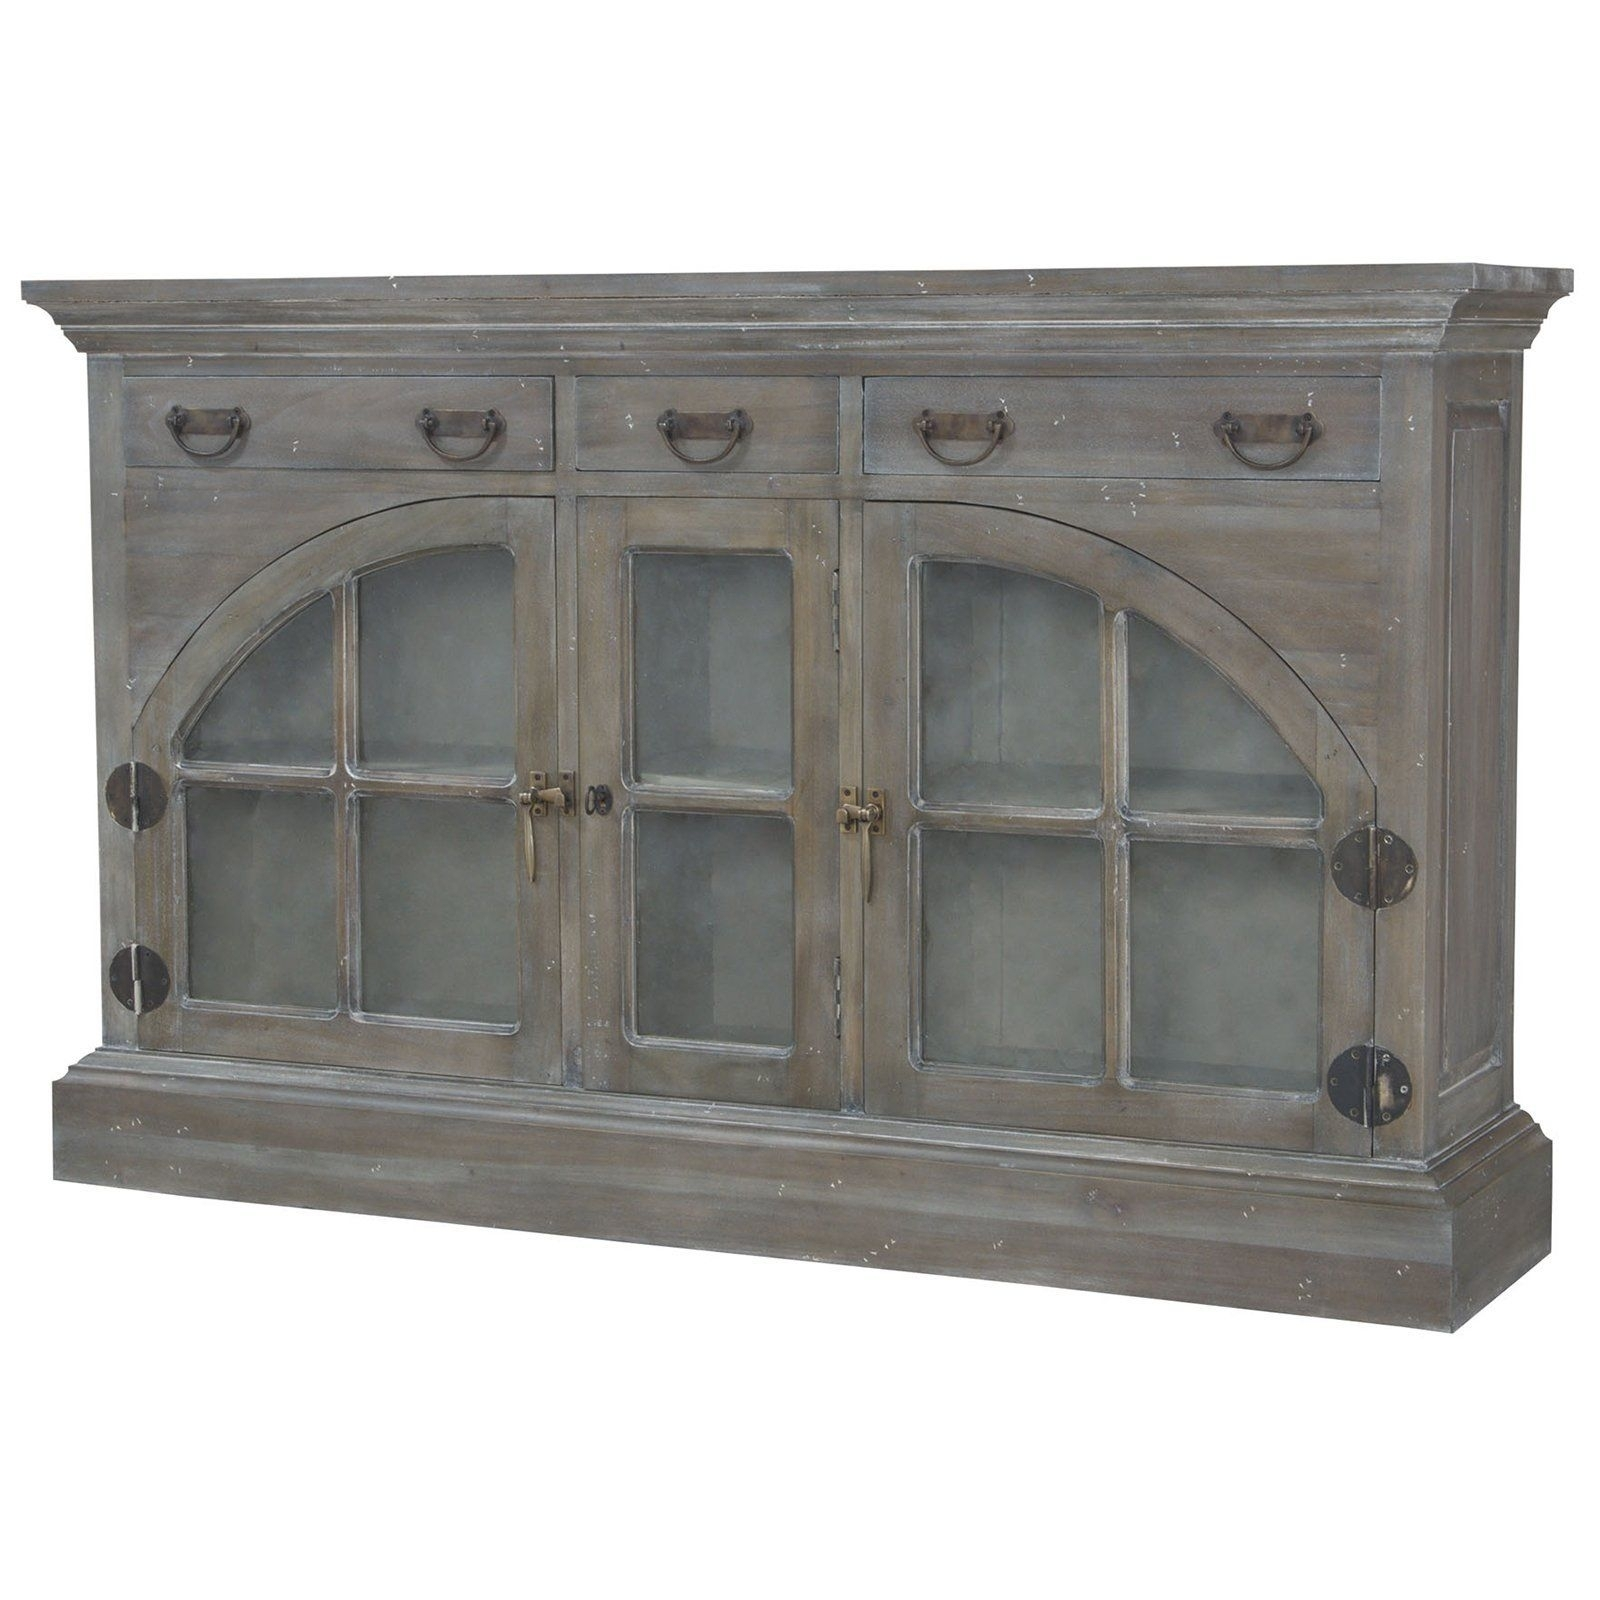 Farmhouse China Credenza In Waterfront Grey Stain And White Wash for White Wash 4-Door Galvanized Sideboards (Image 12 of 30)